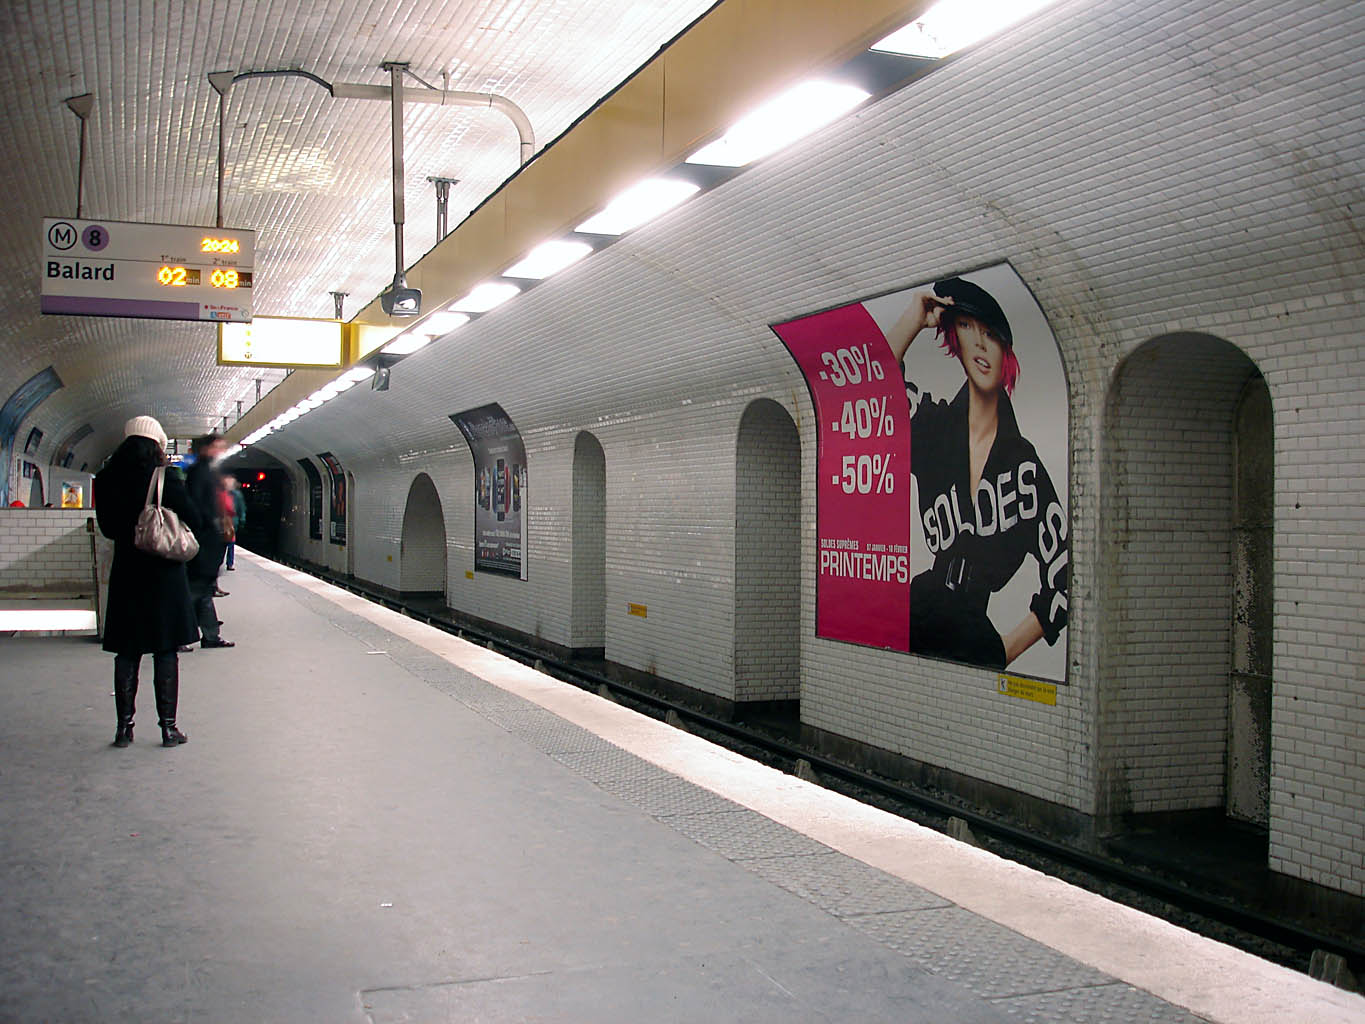 file metro de paris ligne 8 republique wikimedia commons. Black Bedroom Furniture Sets. Home Design Ideas